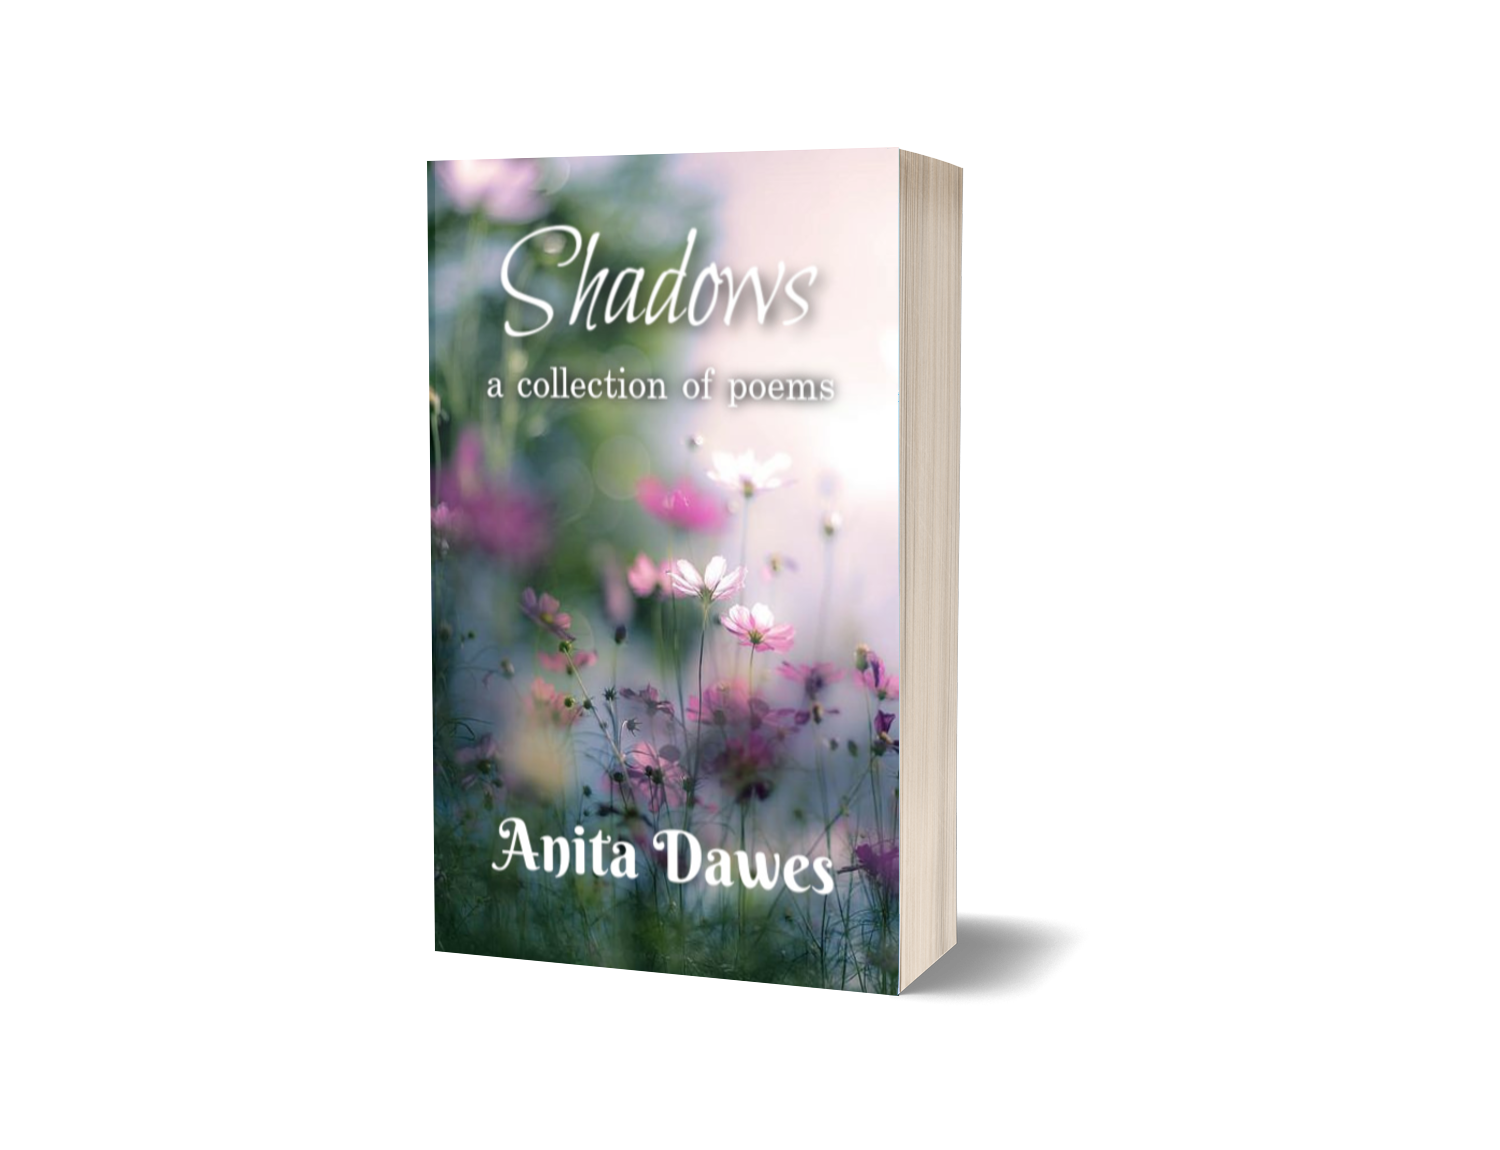 Cover image of Shadows, a book of poems